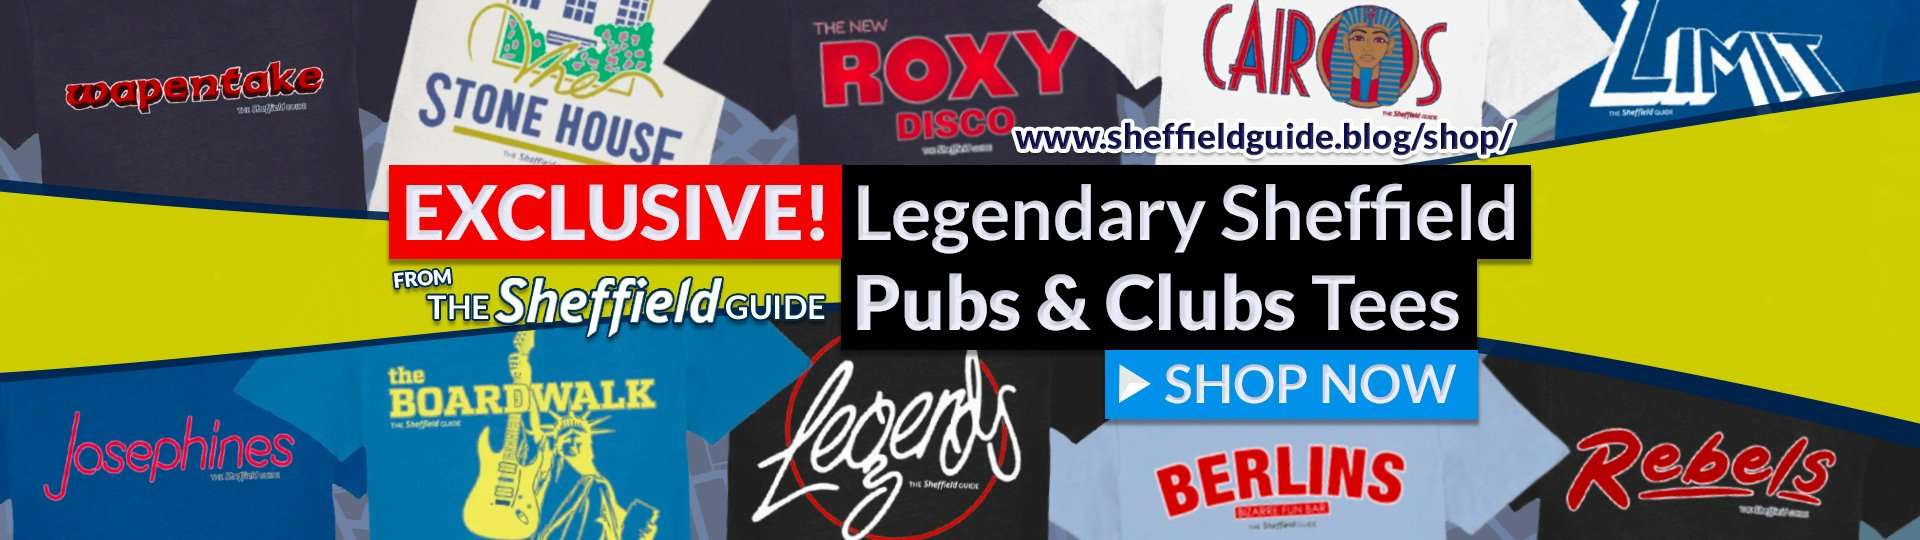 EXCLUSIVE! Legendary Sheffield Pubs & Clubs Tees & More from The Sheffield Guide. Shop now!